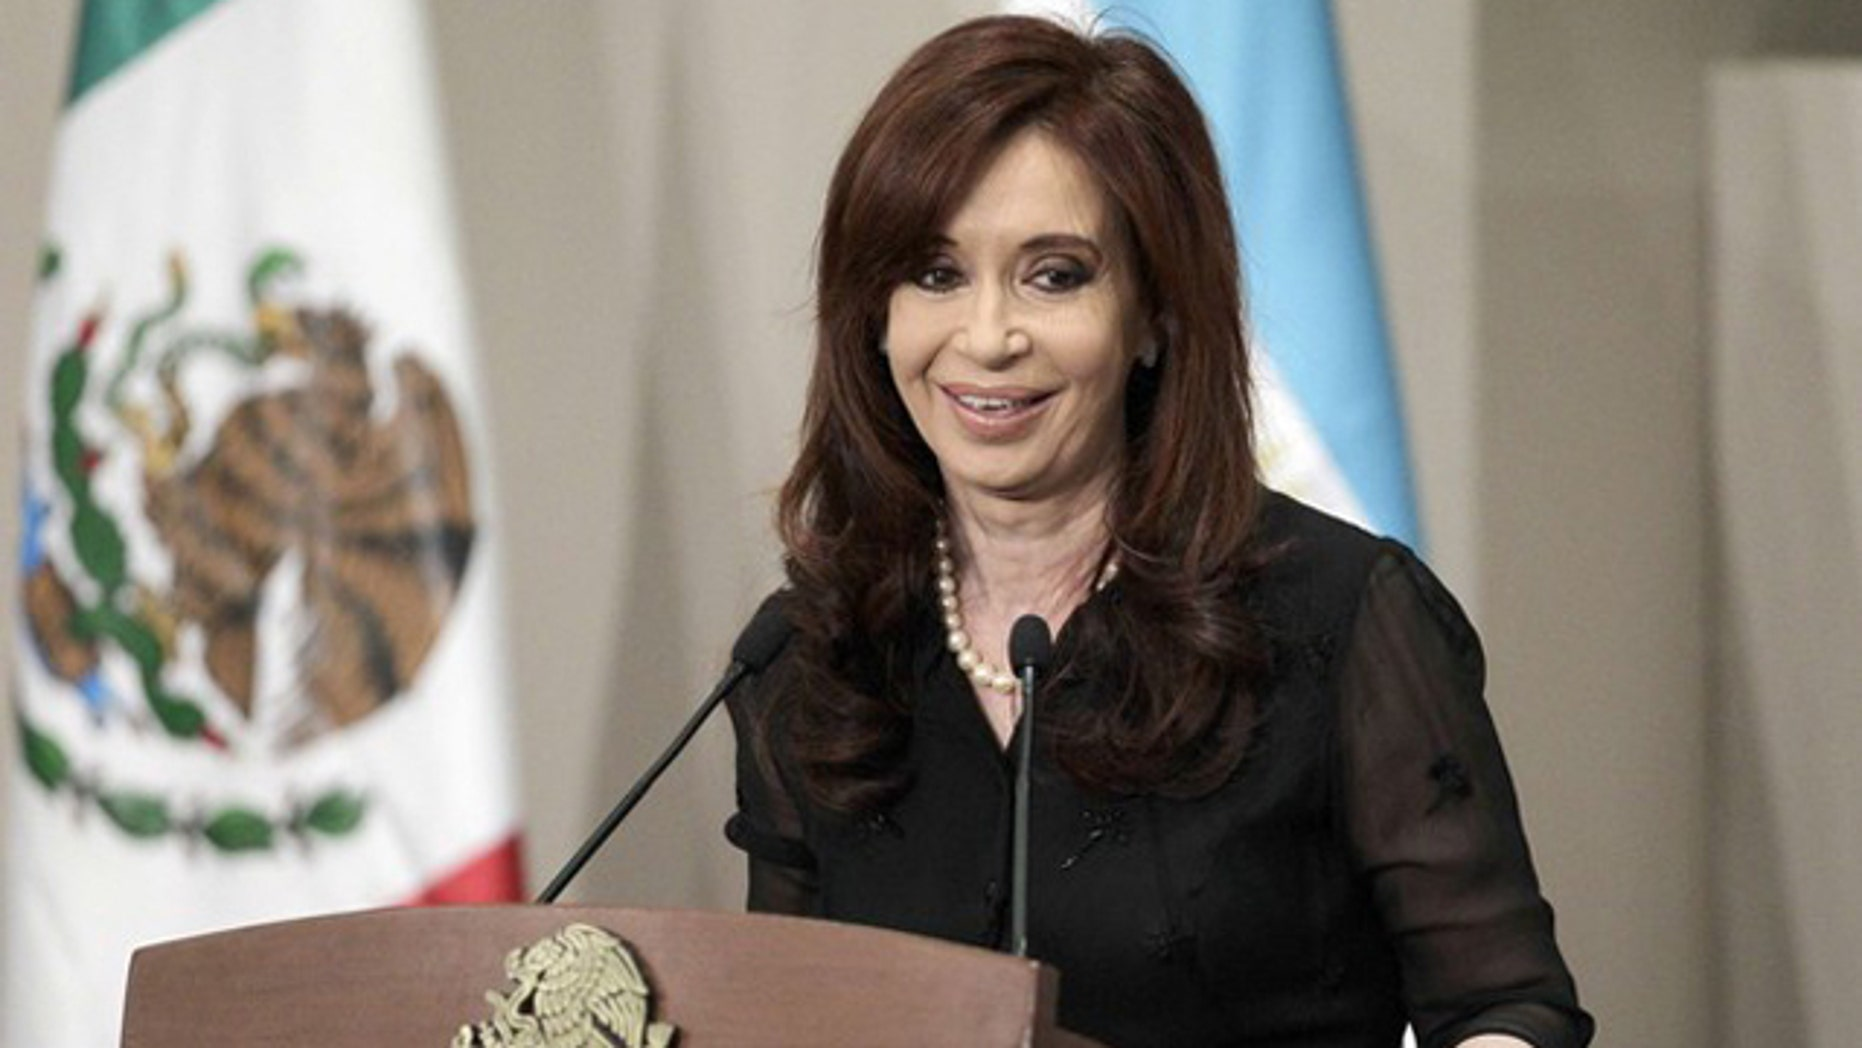 Argentina's President Cristina Fernandez de Kirchner smiles during a news conference in Mexico City May 30.